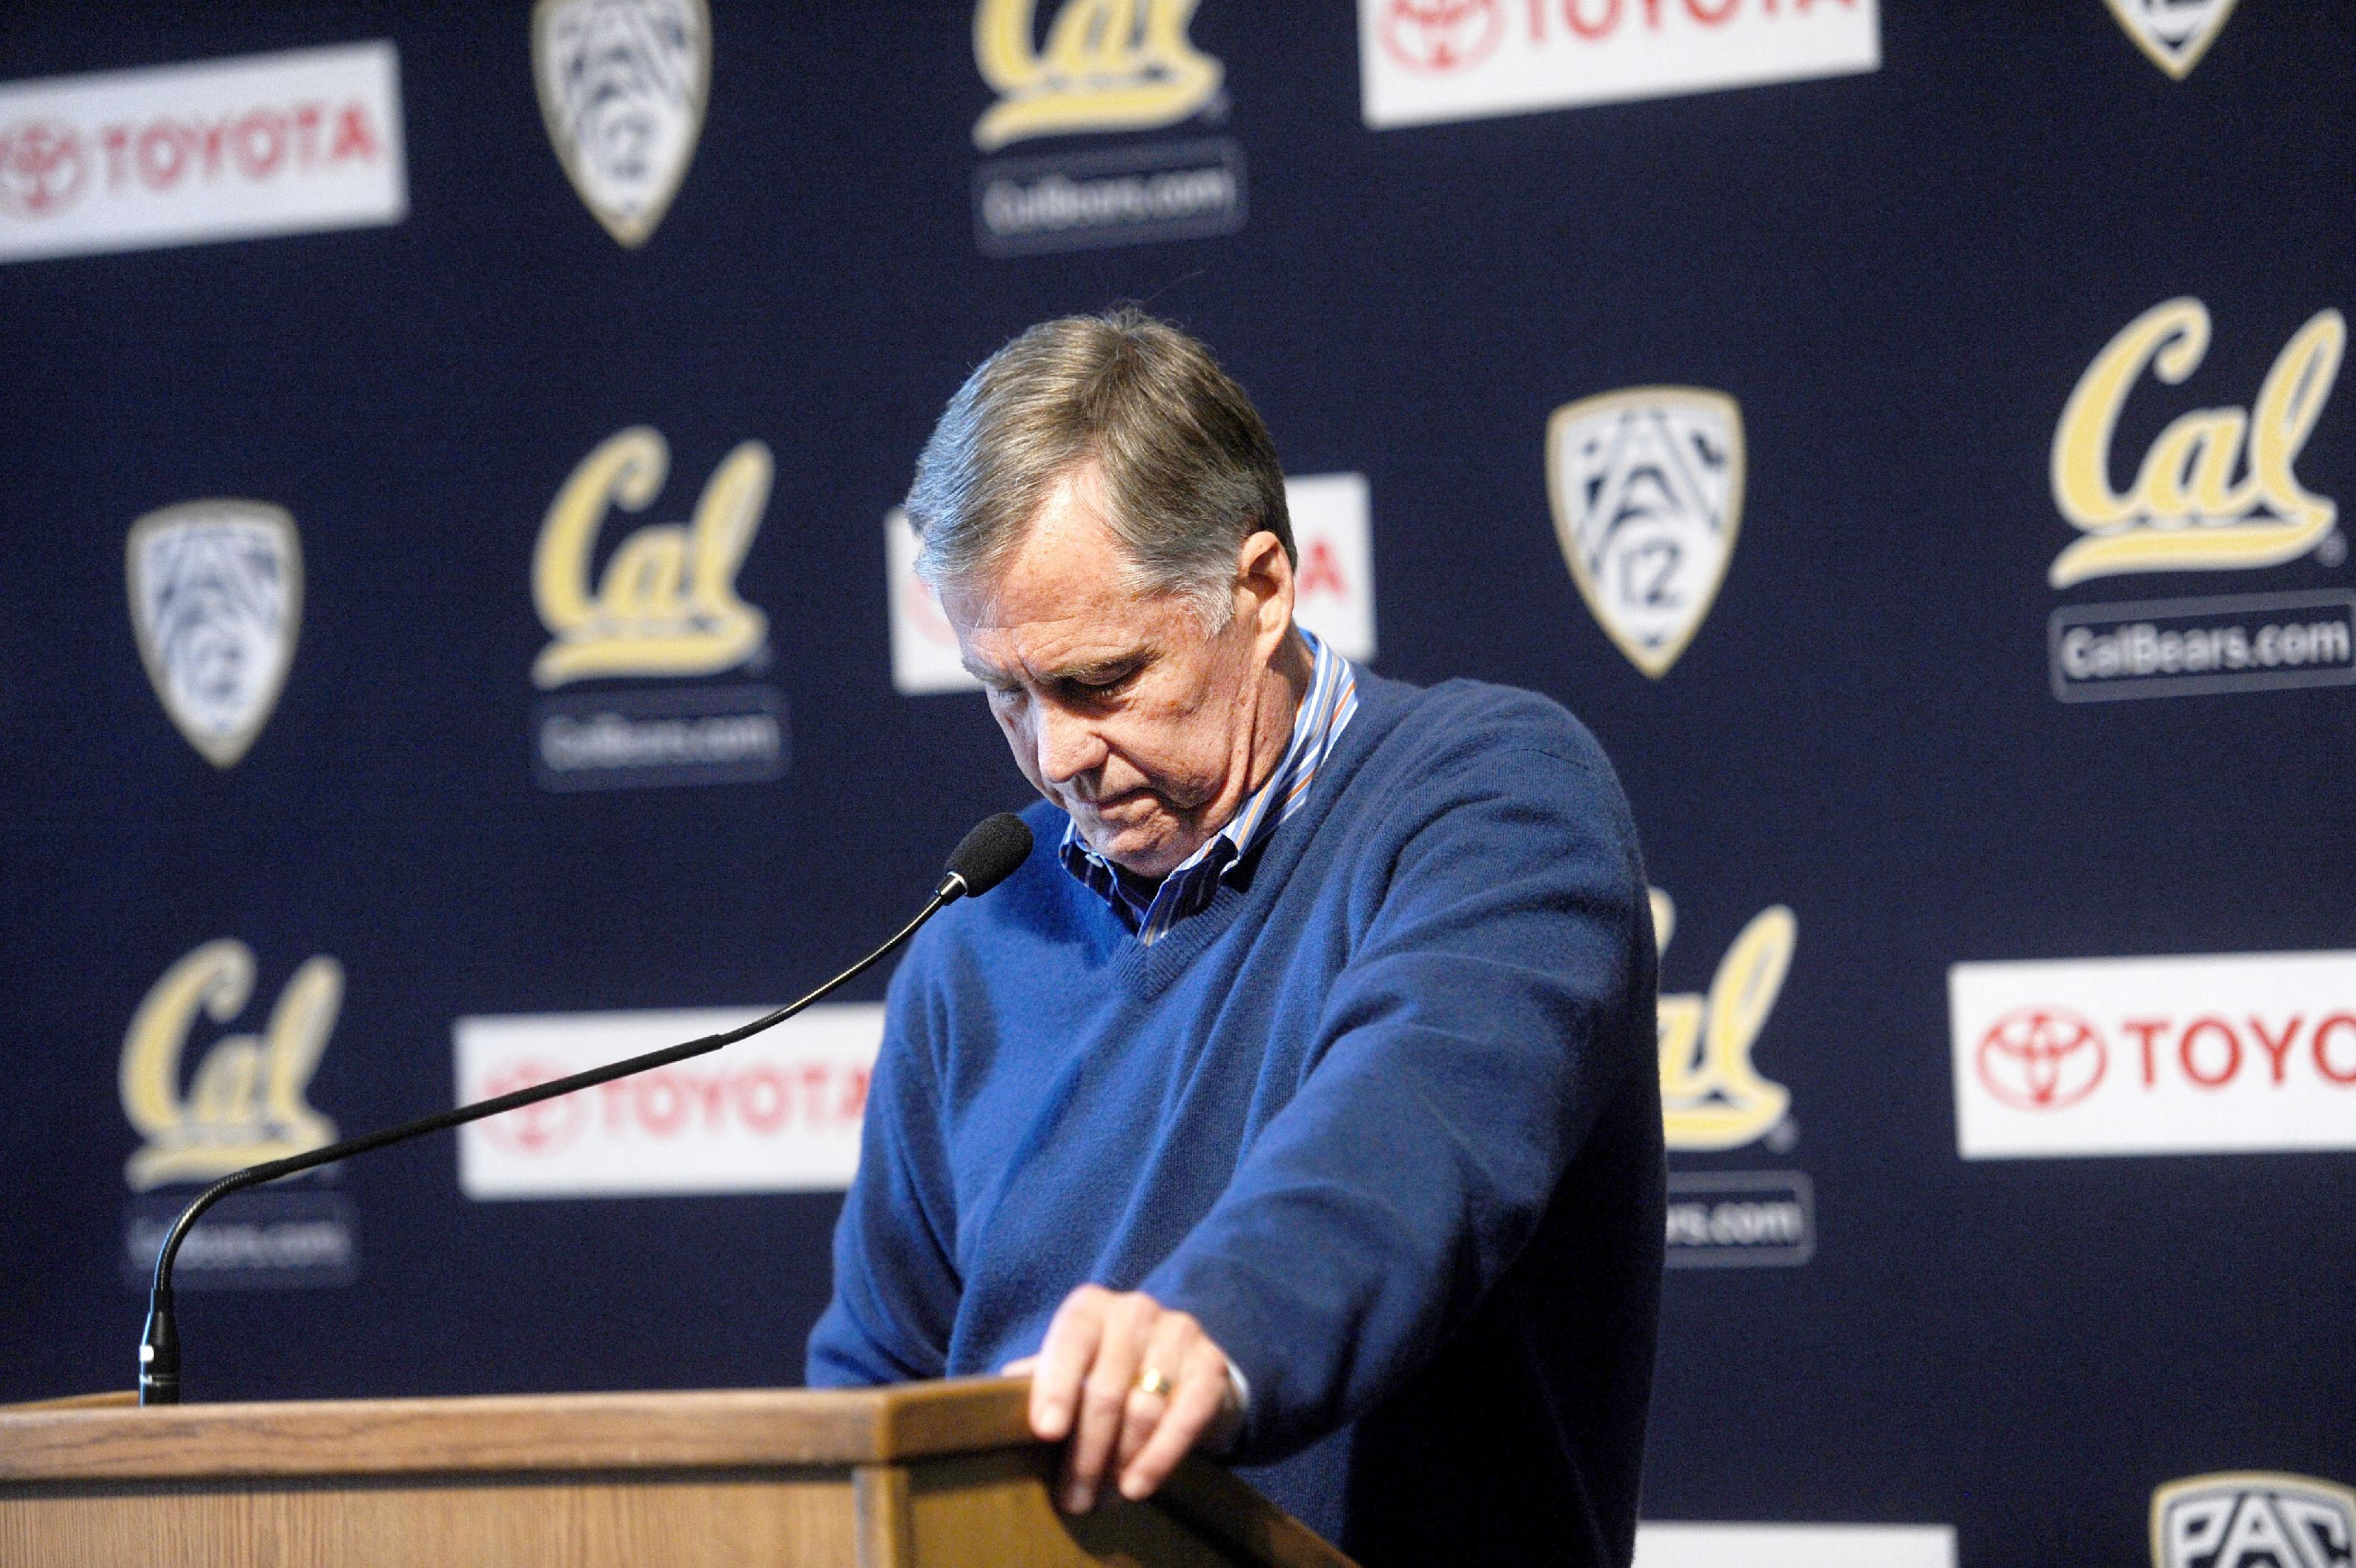 Mike Montgomery, head coach of the California basketball team, pauses while discussing his retirement during a news conference Monday, March 31, 2014, in Berkeley, Calif. Montgomery's departure comes after 32 years as a collegiate head coach at 677 career victories according to Cal's athletics department. (AP Photo/Noah Berger)